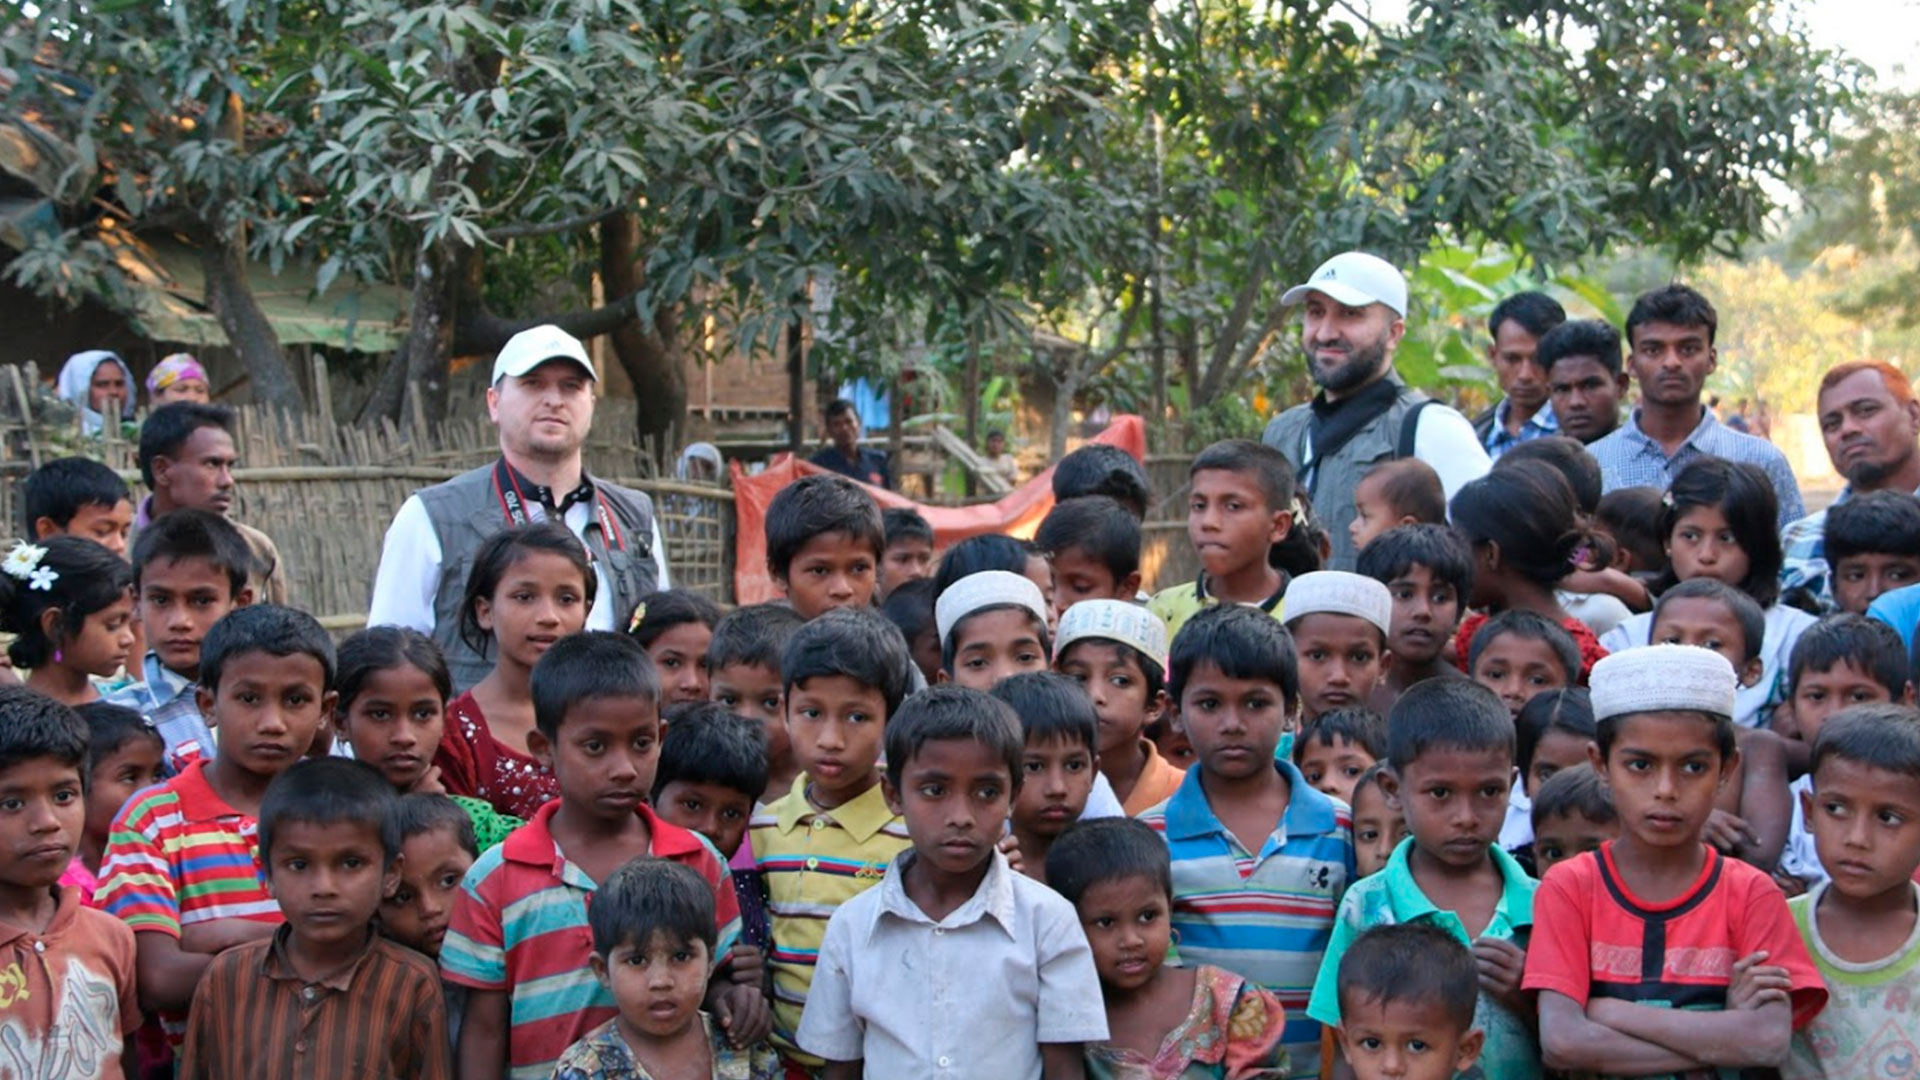 Salsabil is launching a fundraising campaign for its mission in Myanmar